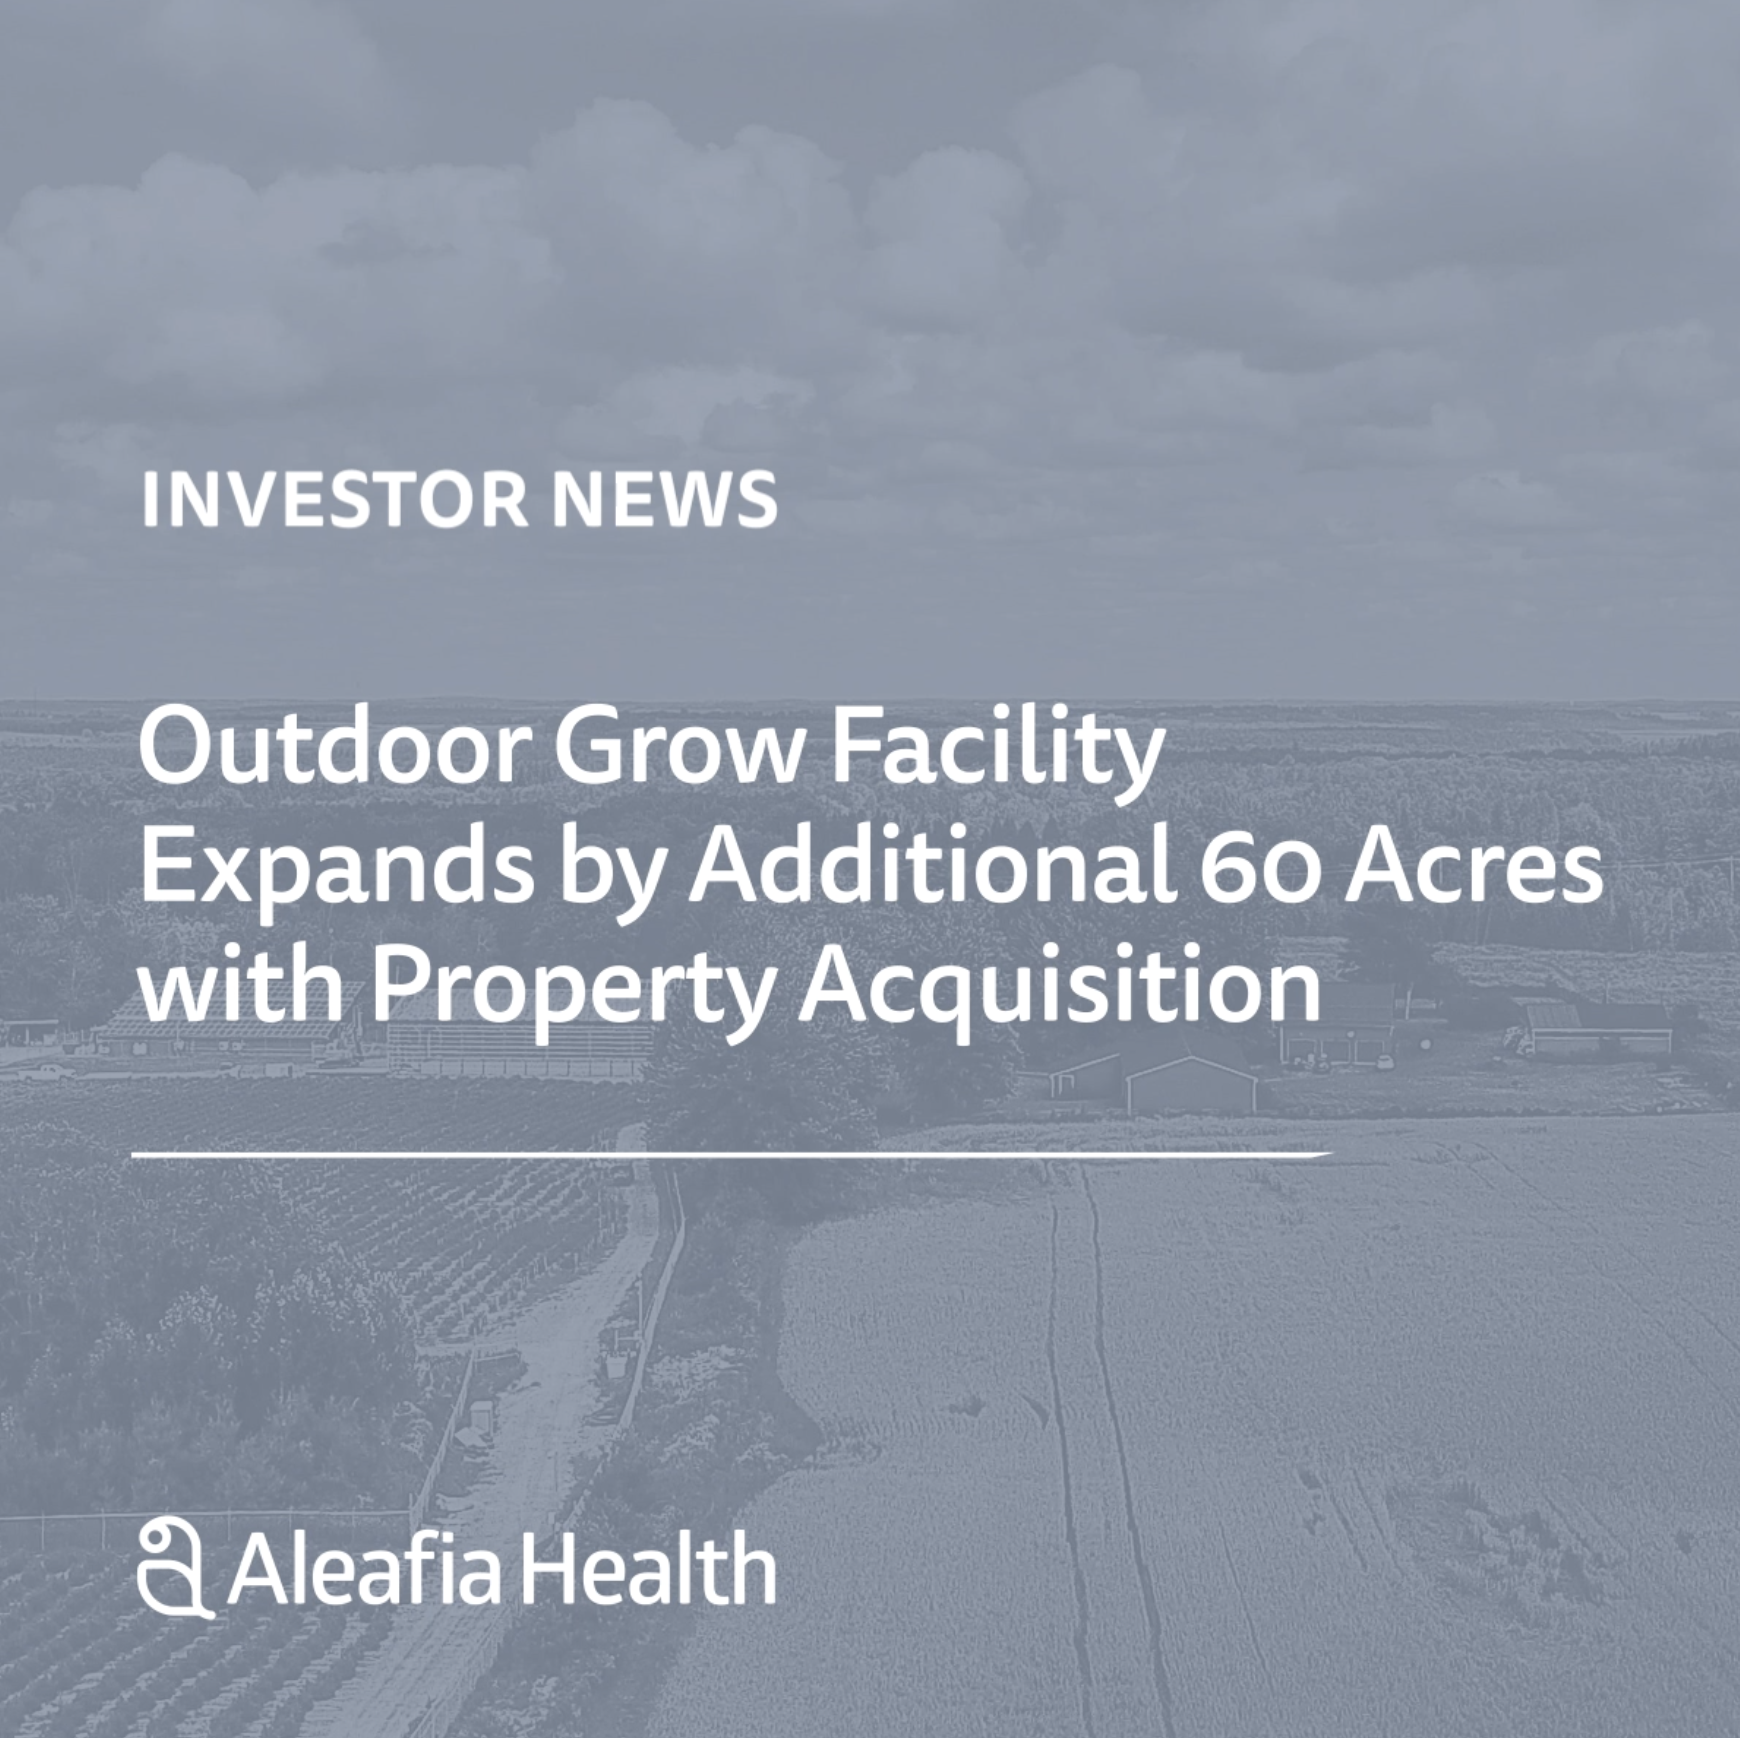 Aleafia Health Expands Outdoor Cannabis Facility by Additional 60 Acres with Property Acquisition